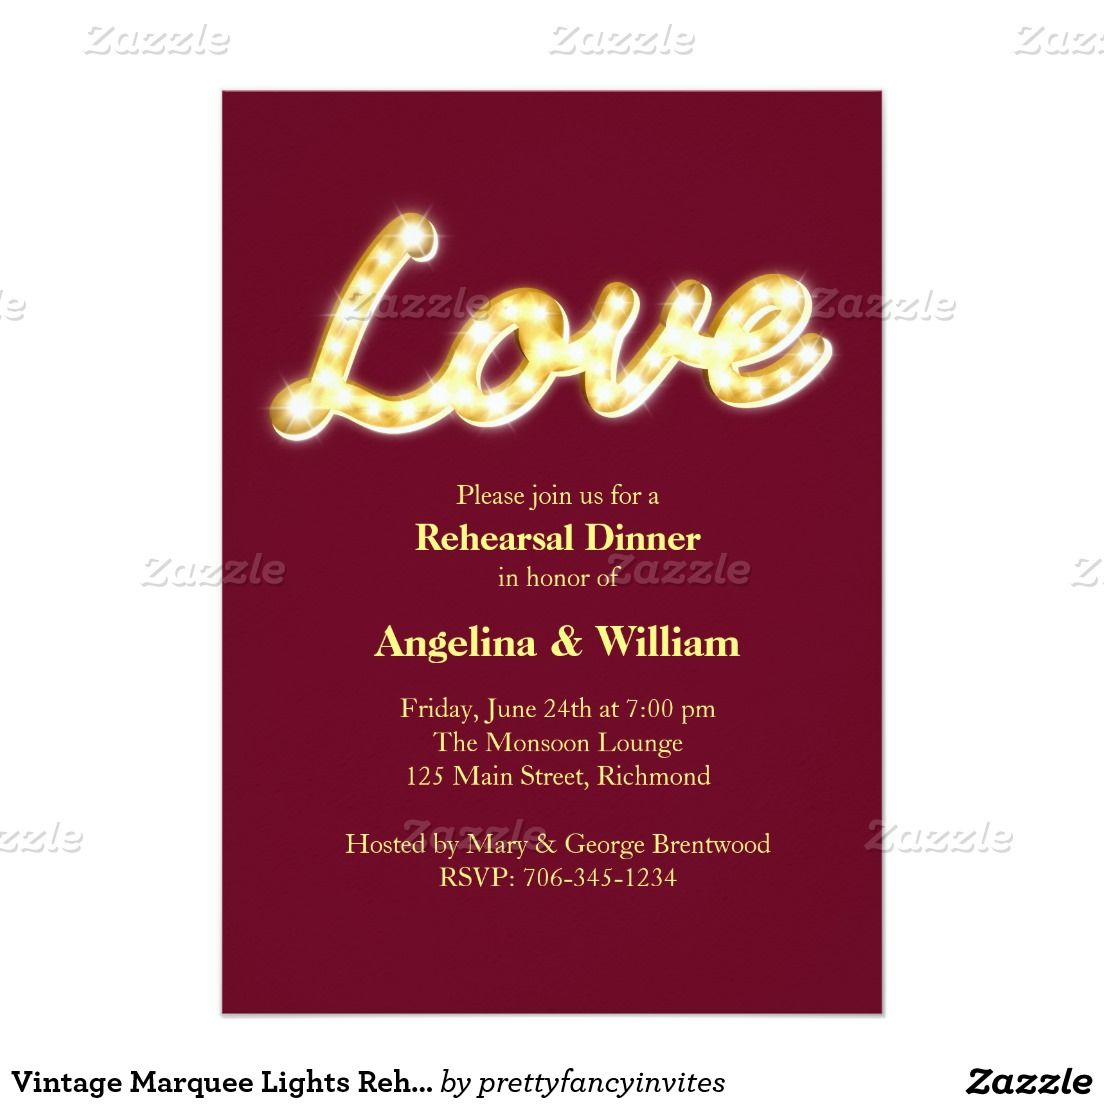 Marquee Lights Rehearsal Dinner Invite | Marquee lights, Rehearsal ...